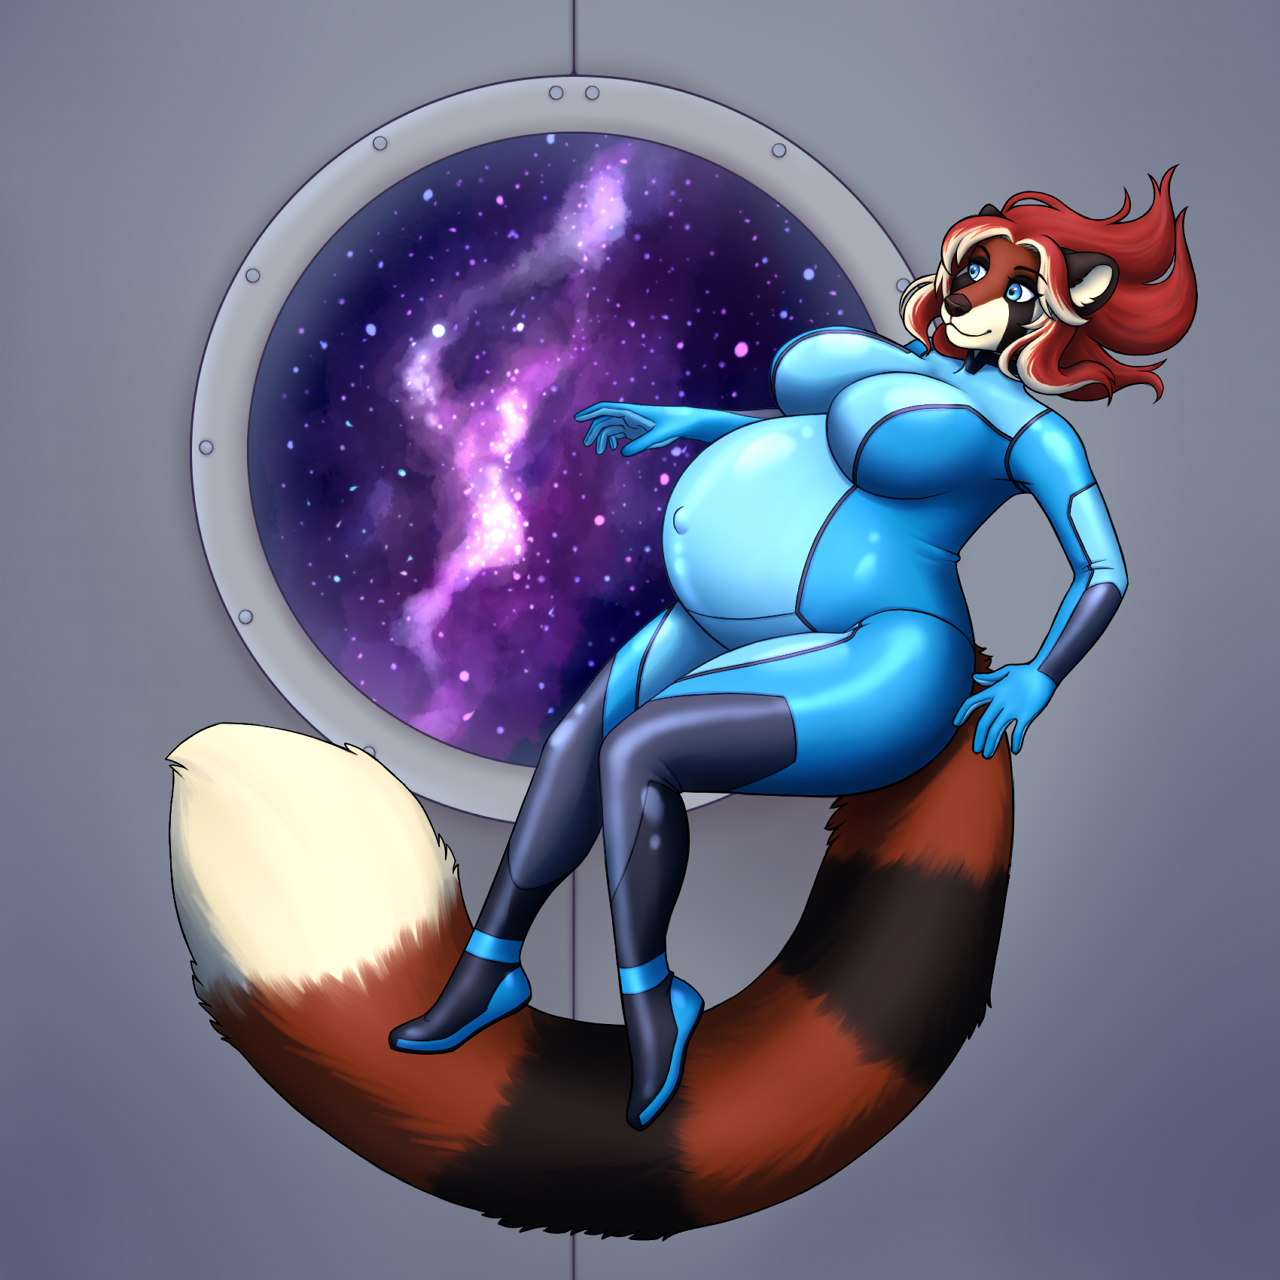 e926 anthro belly big_belly big_breasts black_fur blue_eyes bodyxcount breasts catherine_(alpha-wolf) clothing female fur hair hi_res mammal metroid multicolored_fur navel nintendo outie_navel pregnant red_fur red_hair red_panda skinsuit space tight_clothing video_games white_fur zero_suit